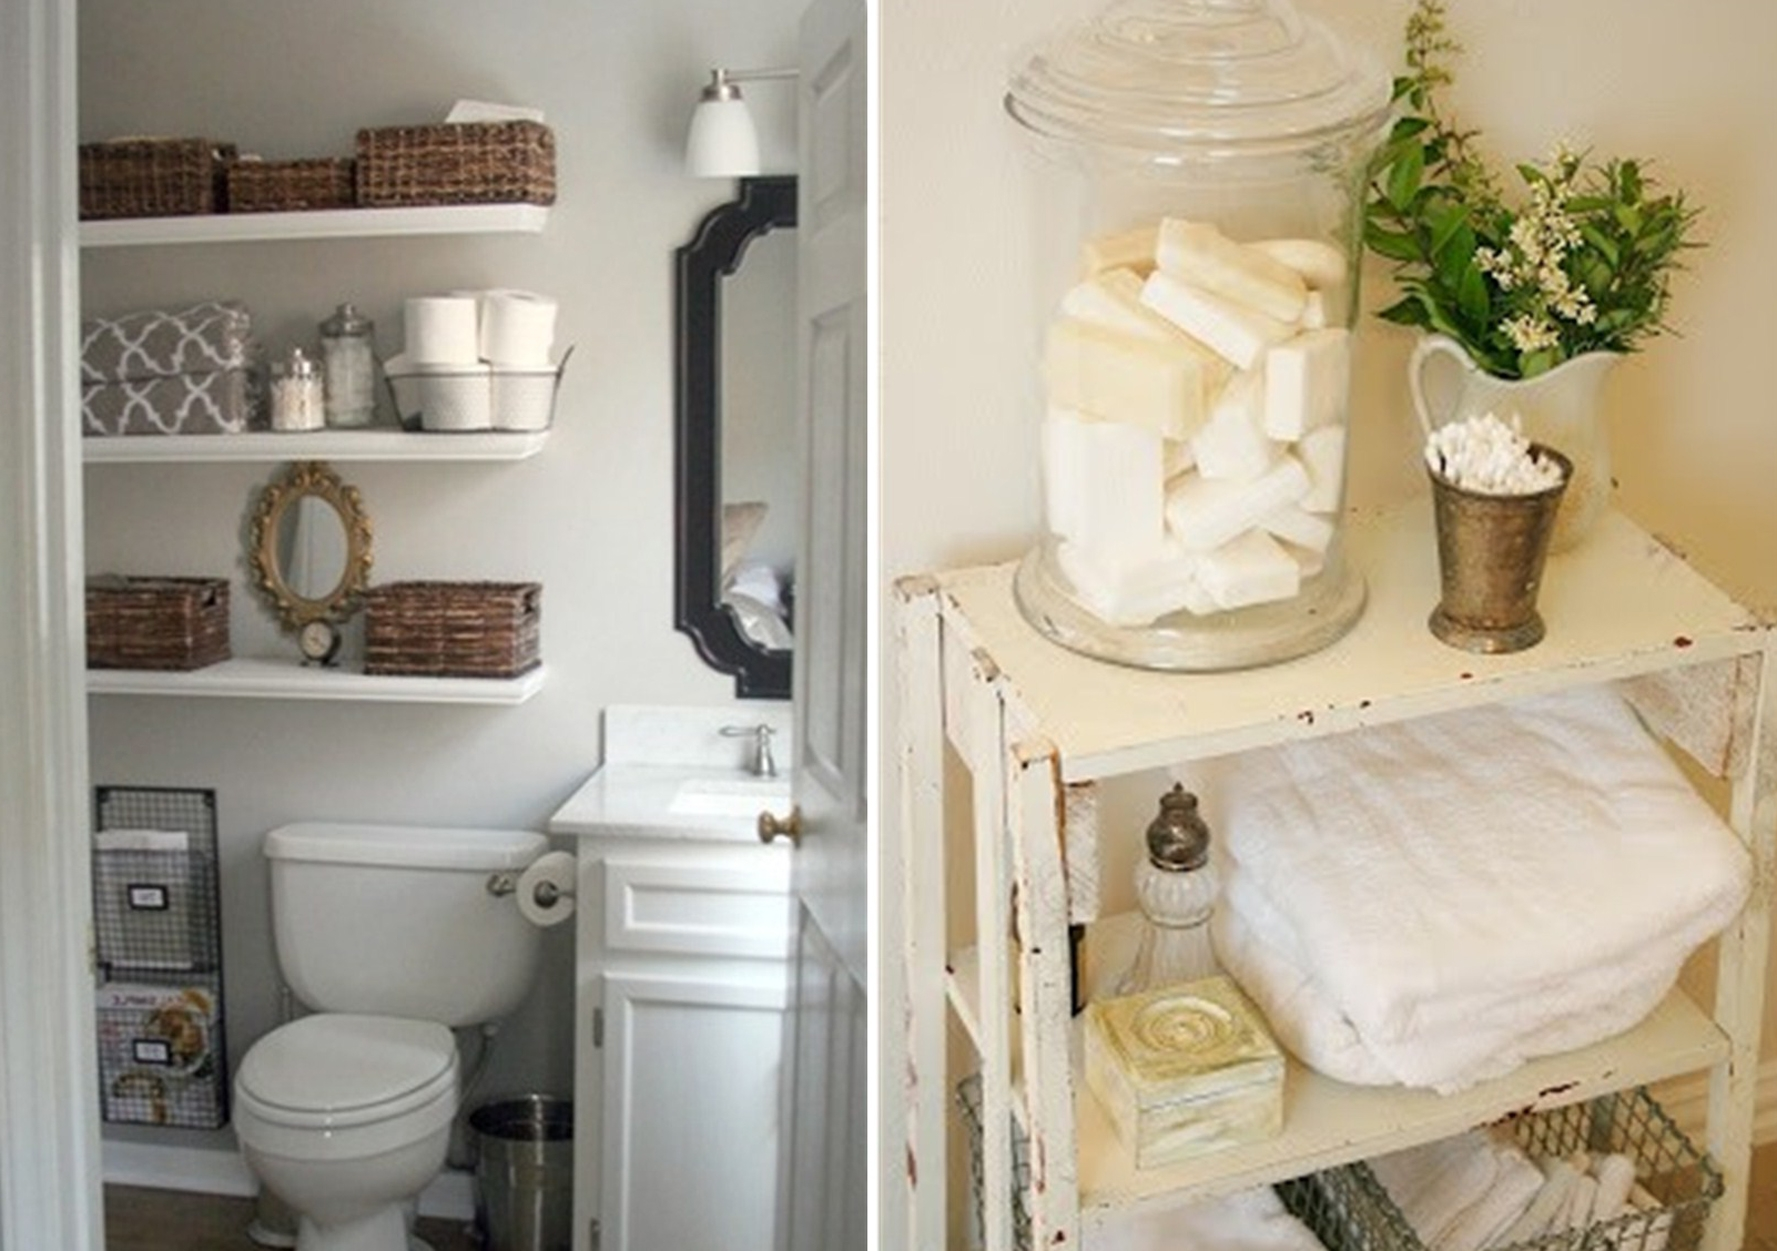 Bathroom Storage Ideas For Towels